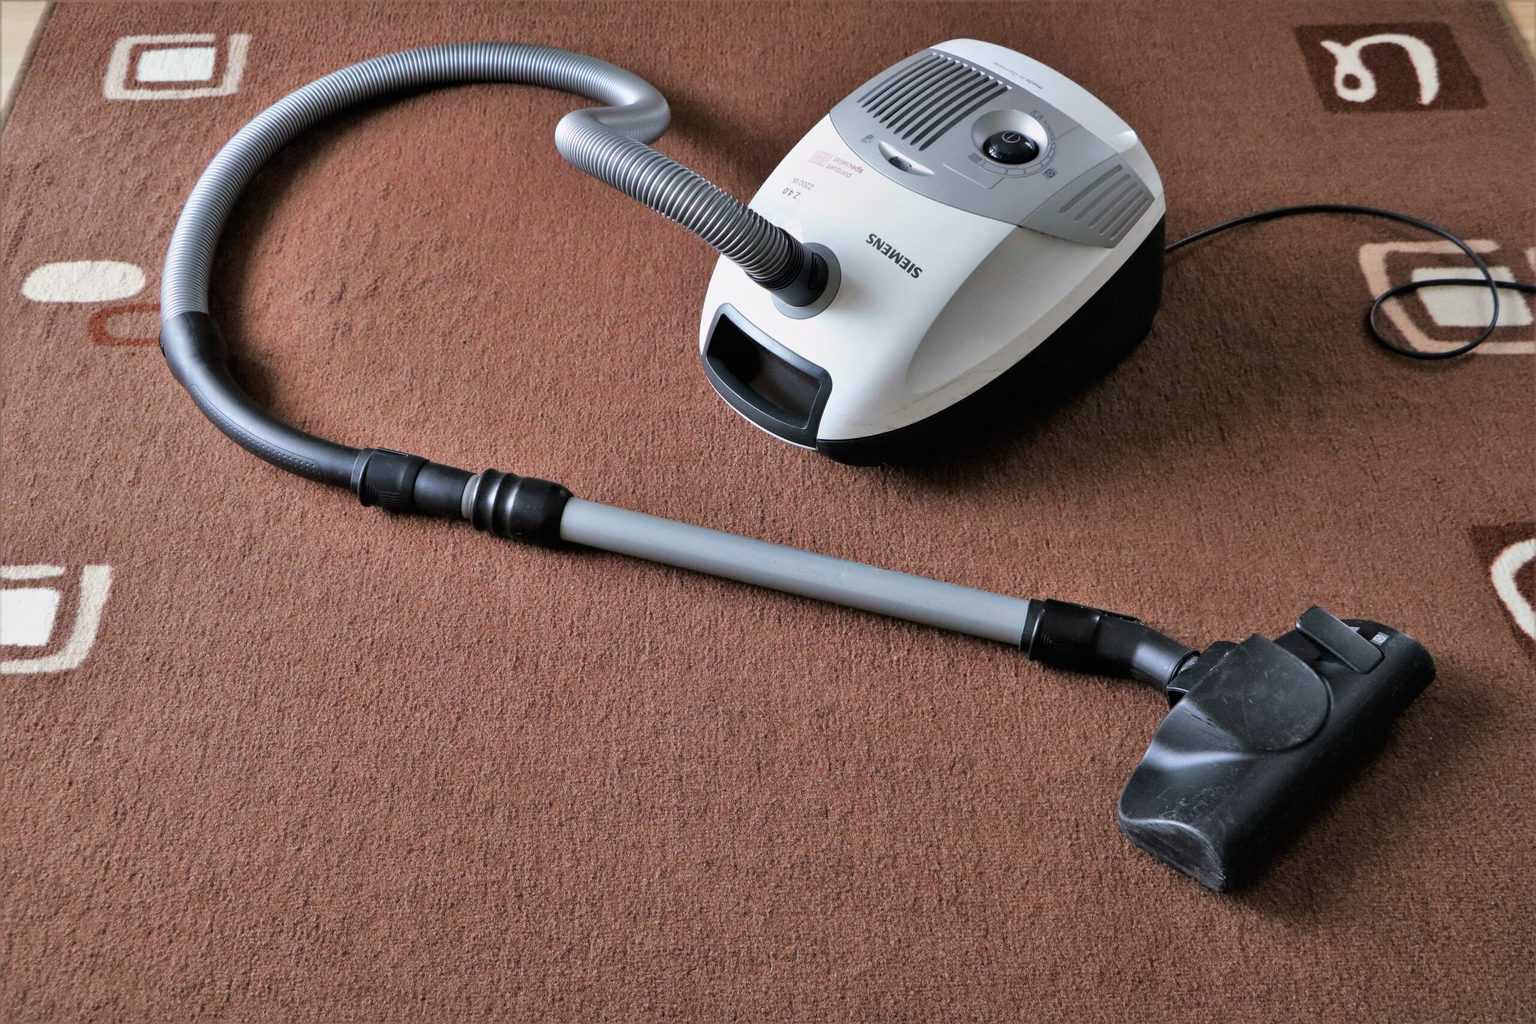 A white vacuum cleaner on a brown carpet